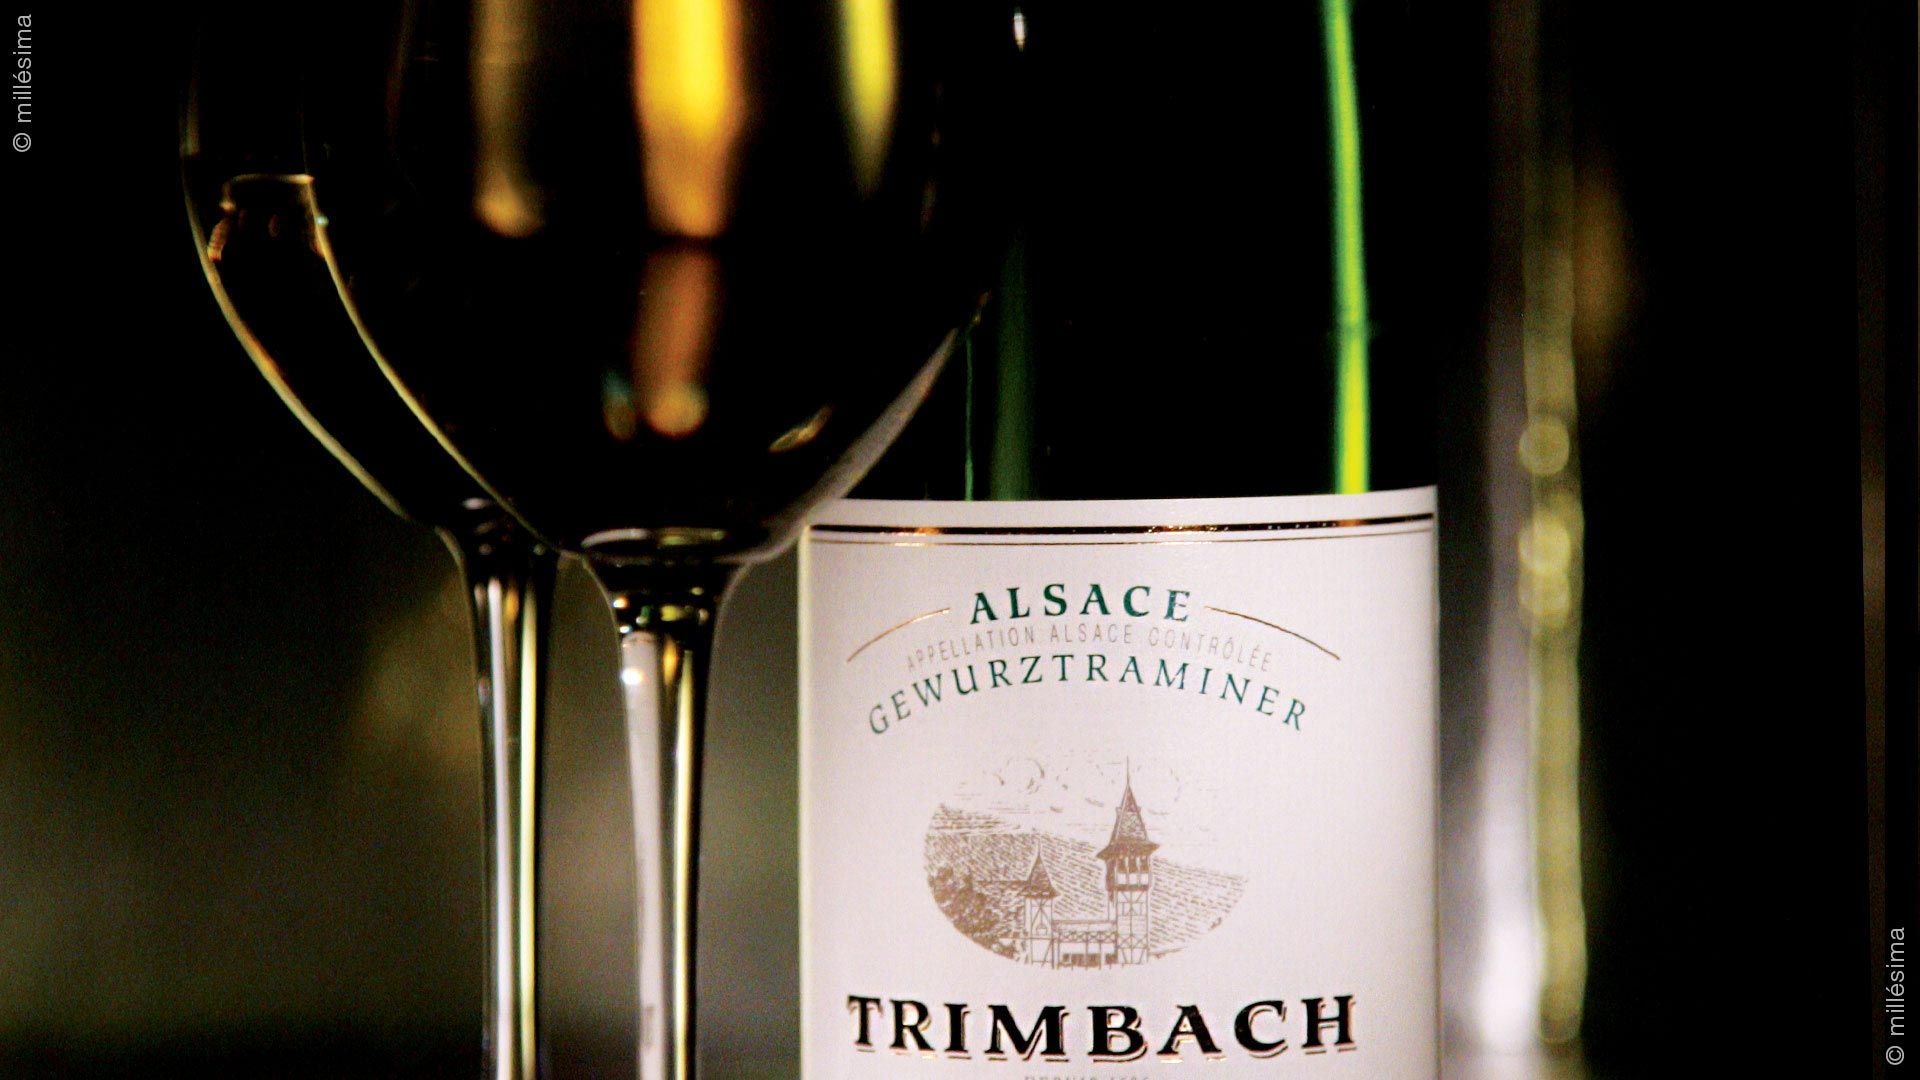 Maison Trimbach : Gewurztraminer Vendanges tardives 2001 - 1